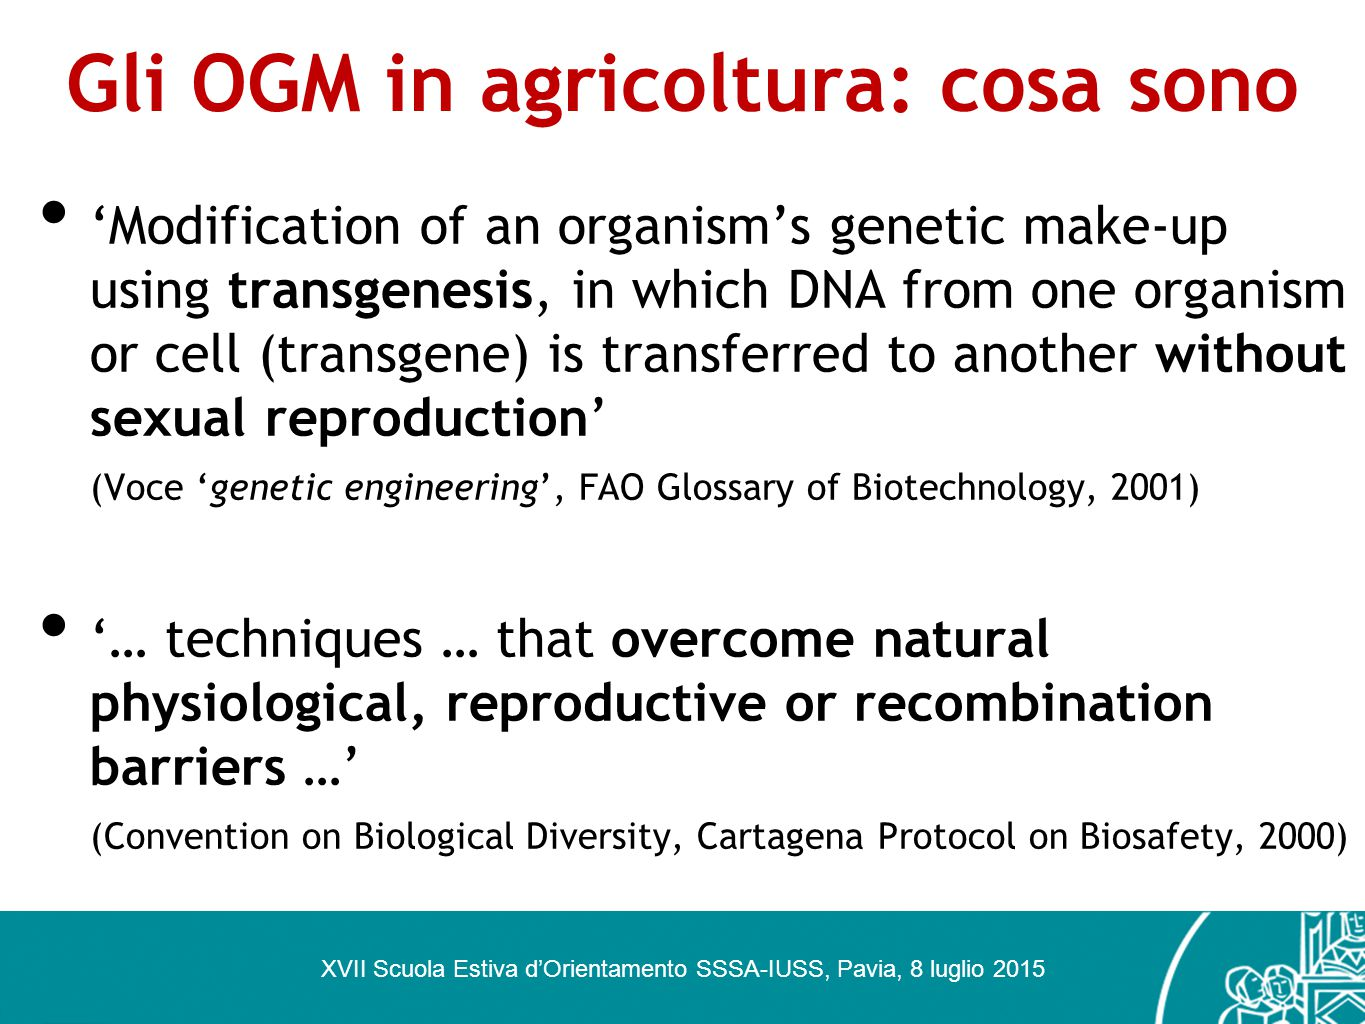 Gli OGM in agricoltura: cosa sono 'Modification of an organism's genetic make-up using transgenesis, in which DNA from one organism or cell (transgene